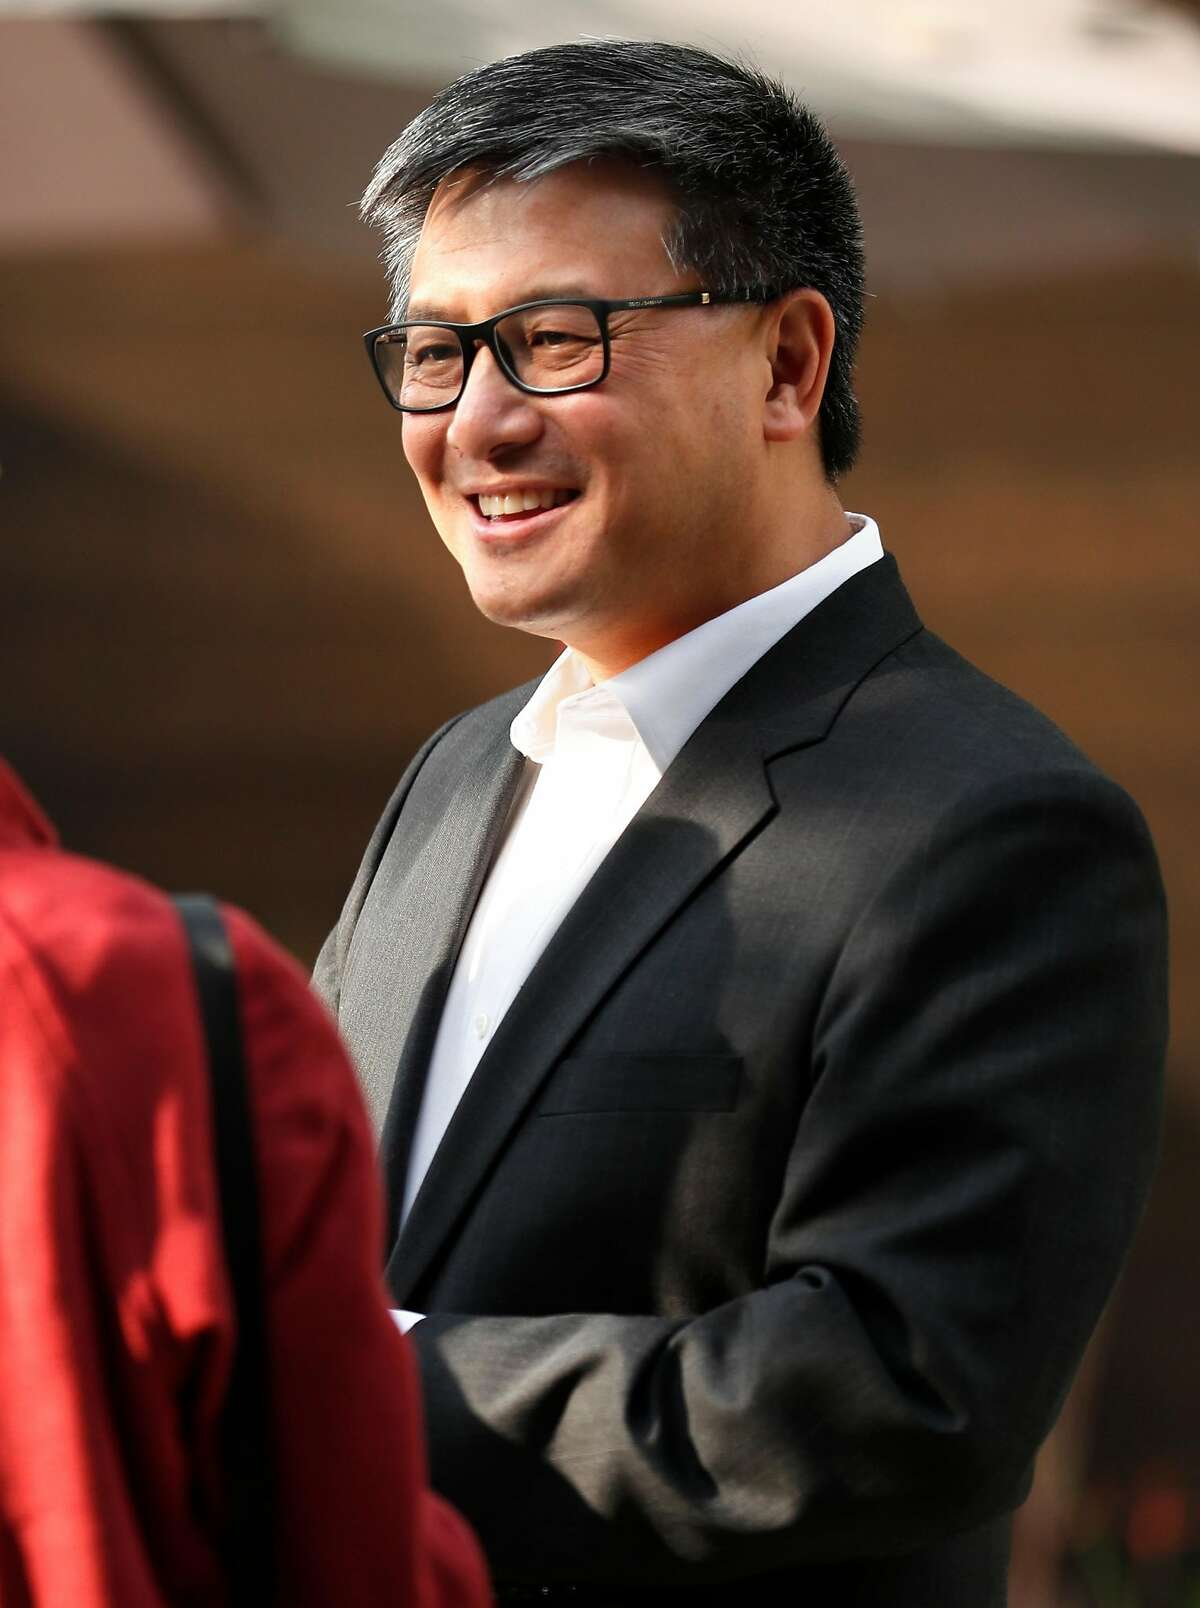 Democratic gubernatorial candidate John Chiang at the Asian Pacific Islander Heritage Month Reception at California Democratic Party HQ in Sacramento, CA on Wednesday, May 16, 2018.